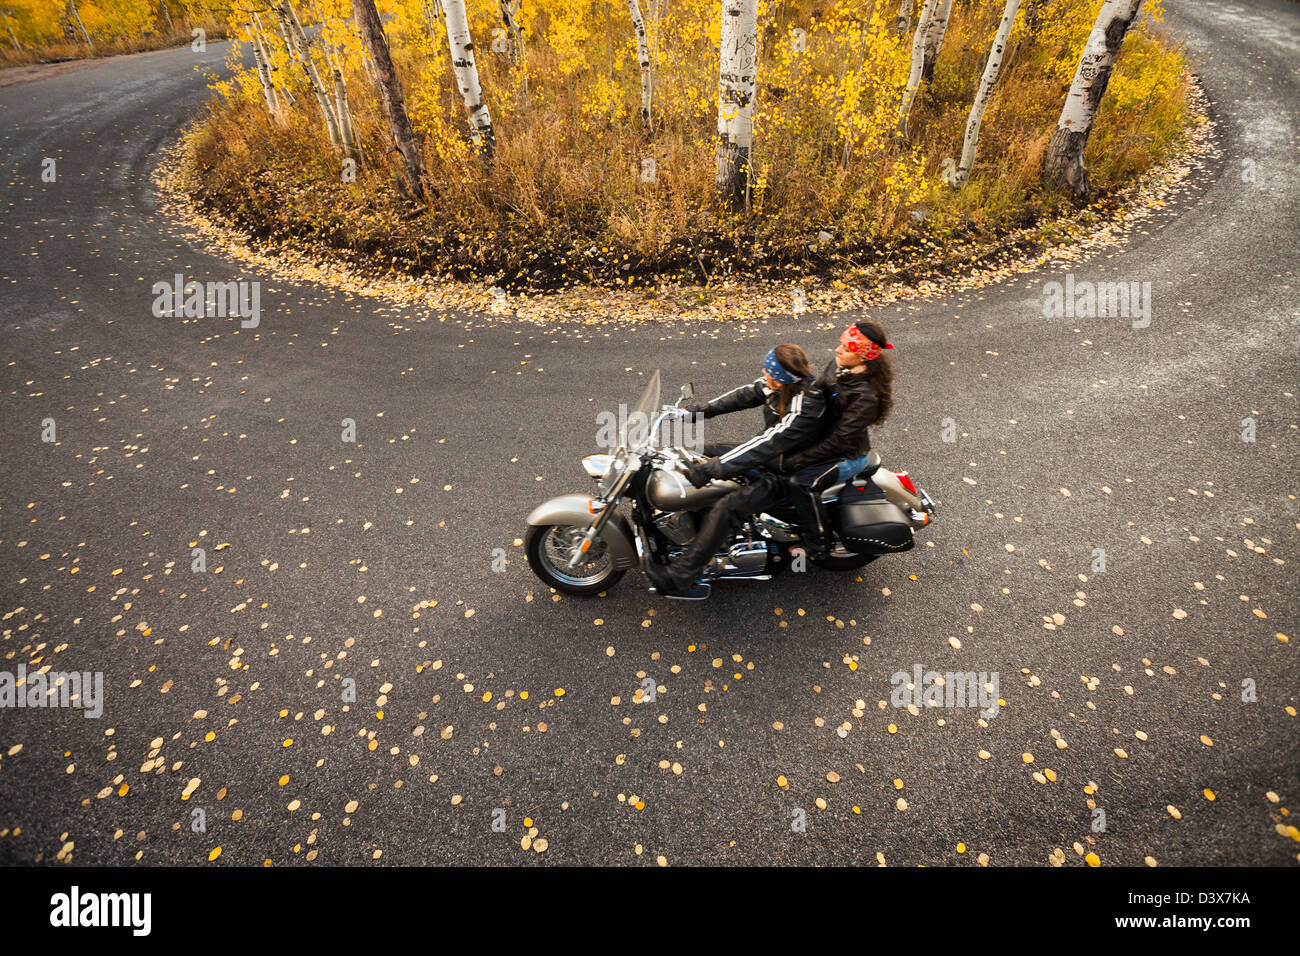 Husband Wife Riding Motorcycle High Resolution Stock Photography And Images Alamy